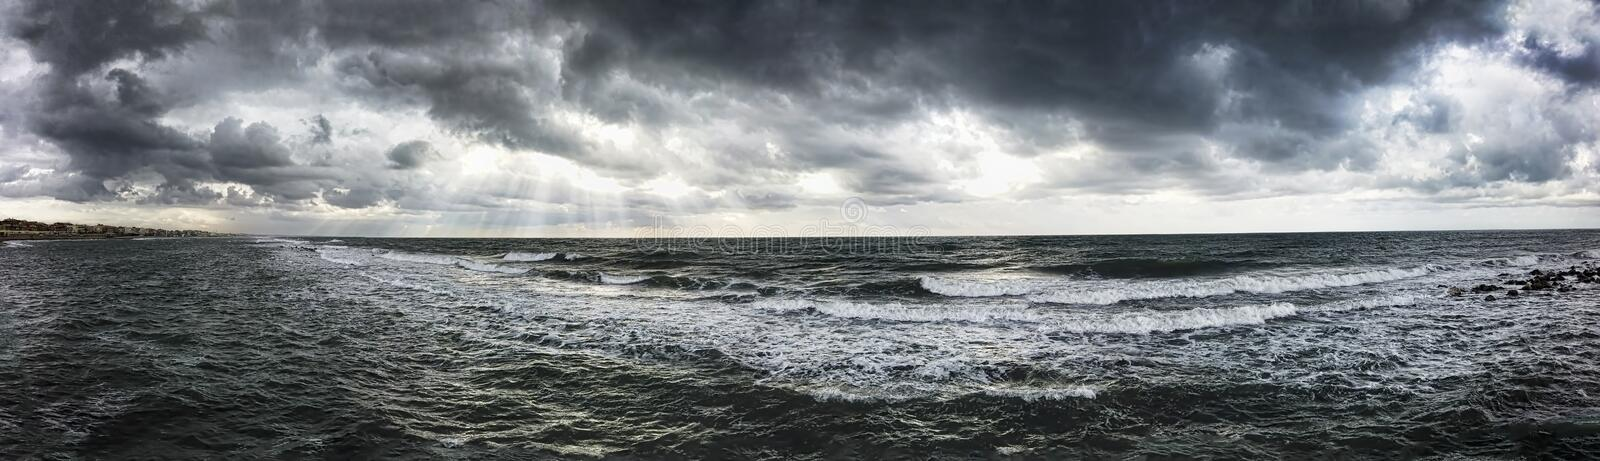 Dramatic weather panorama over the sea threatening waves crashing at the shore with overcast sky and sunbeams on the water royalty free stock images